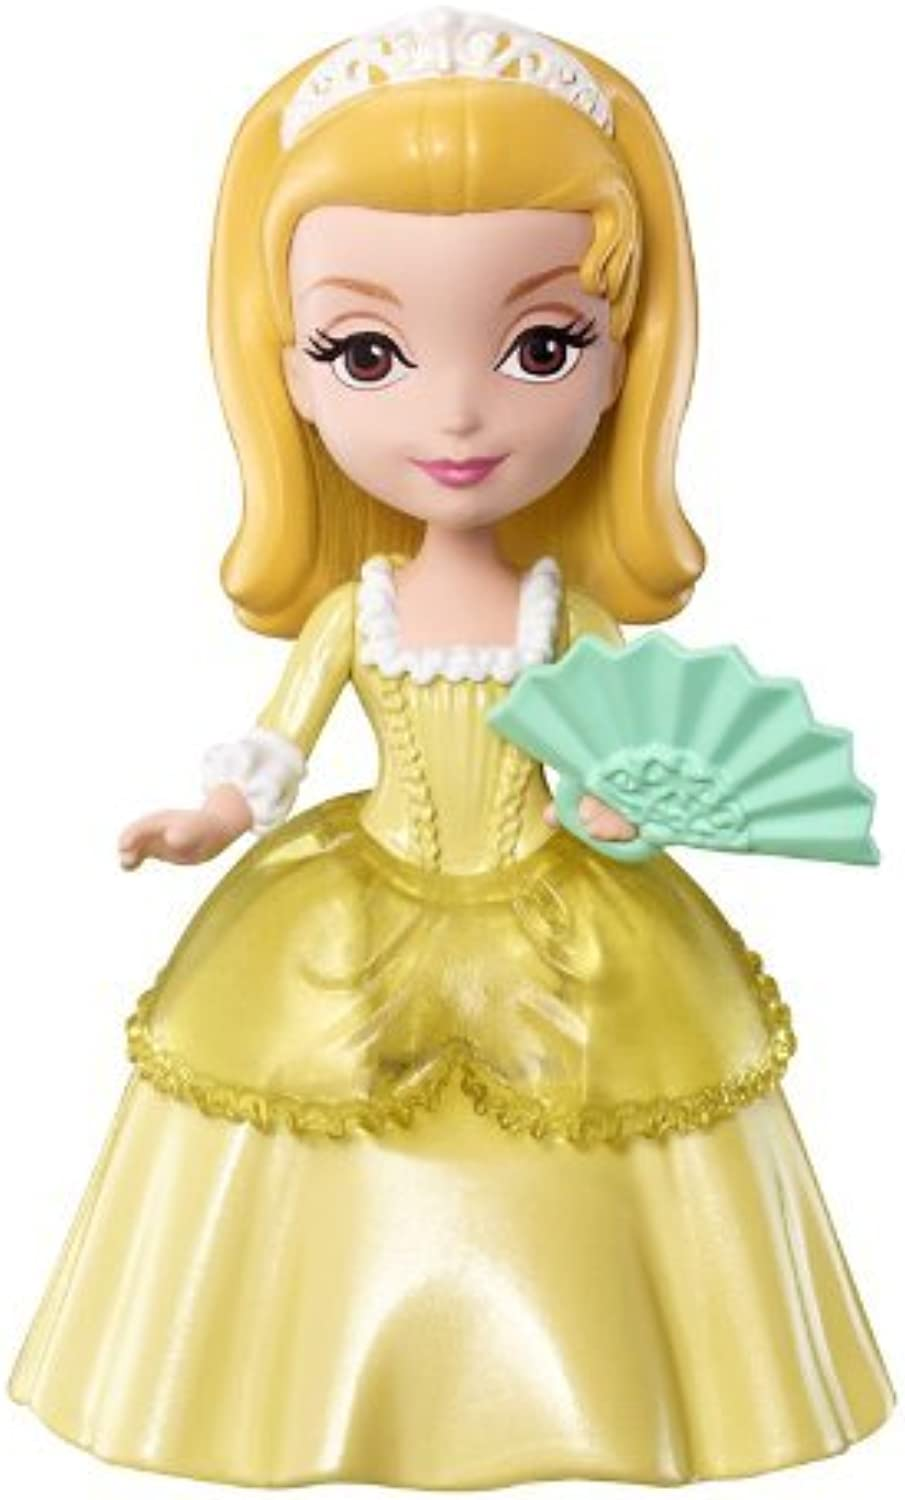 Disney Sofia the First 3 Inch Action Figure Princess Amber by Sofia the First